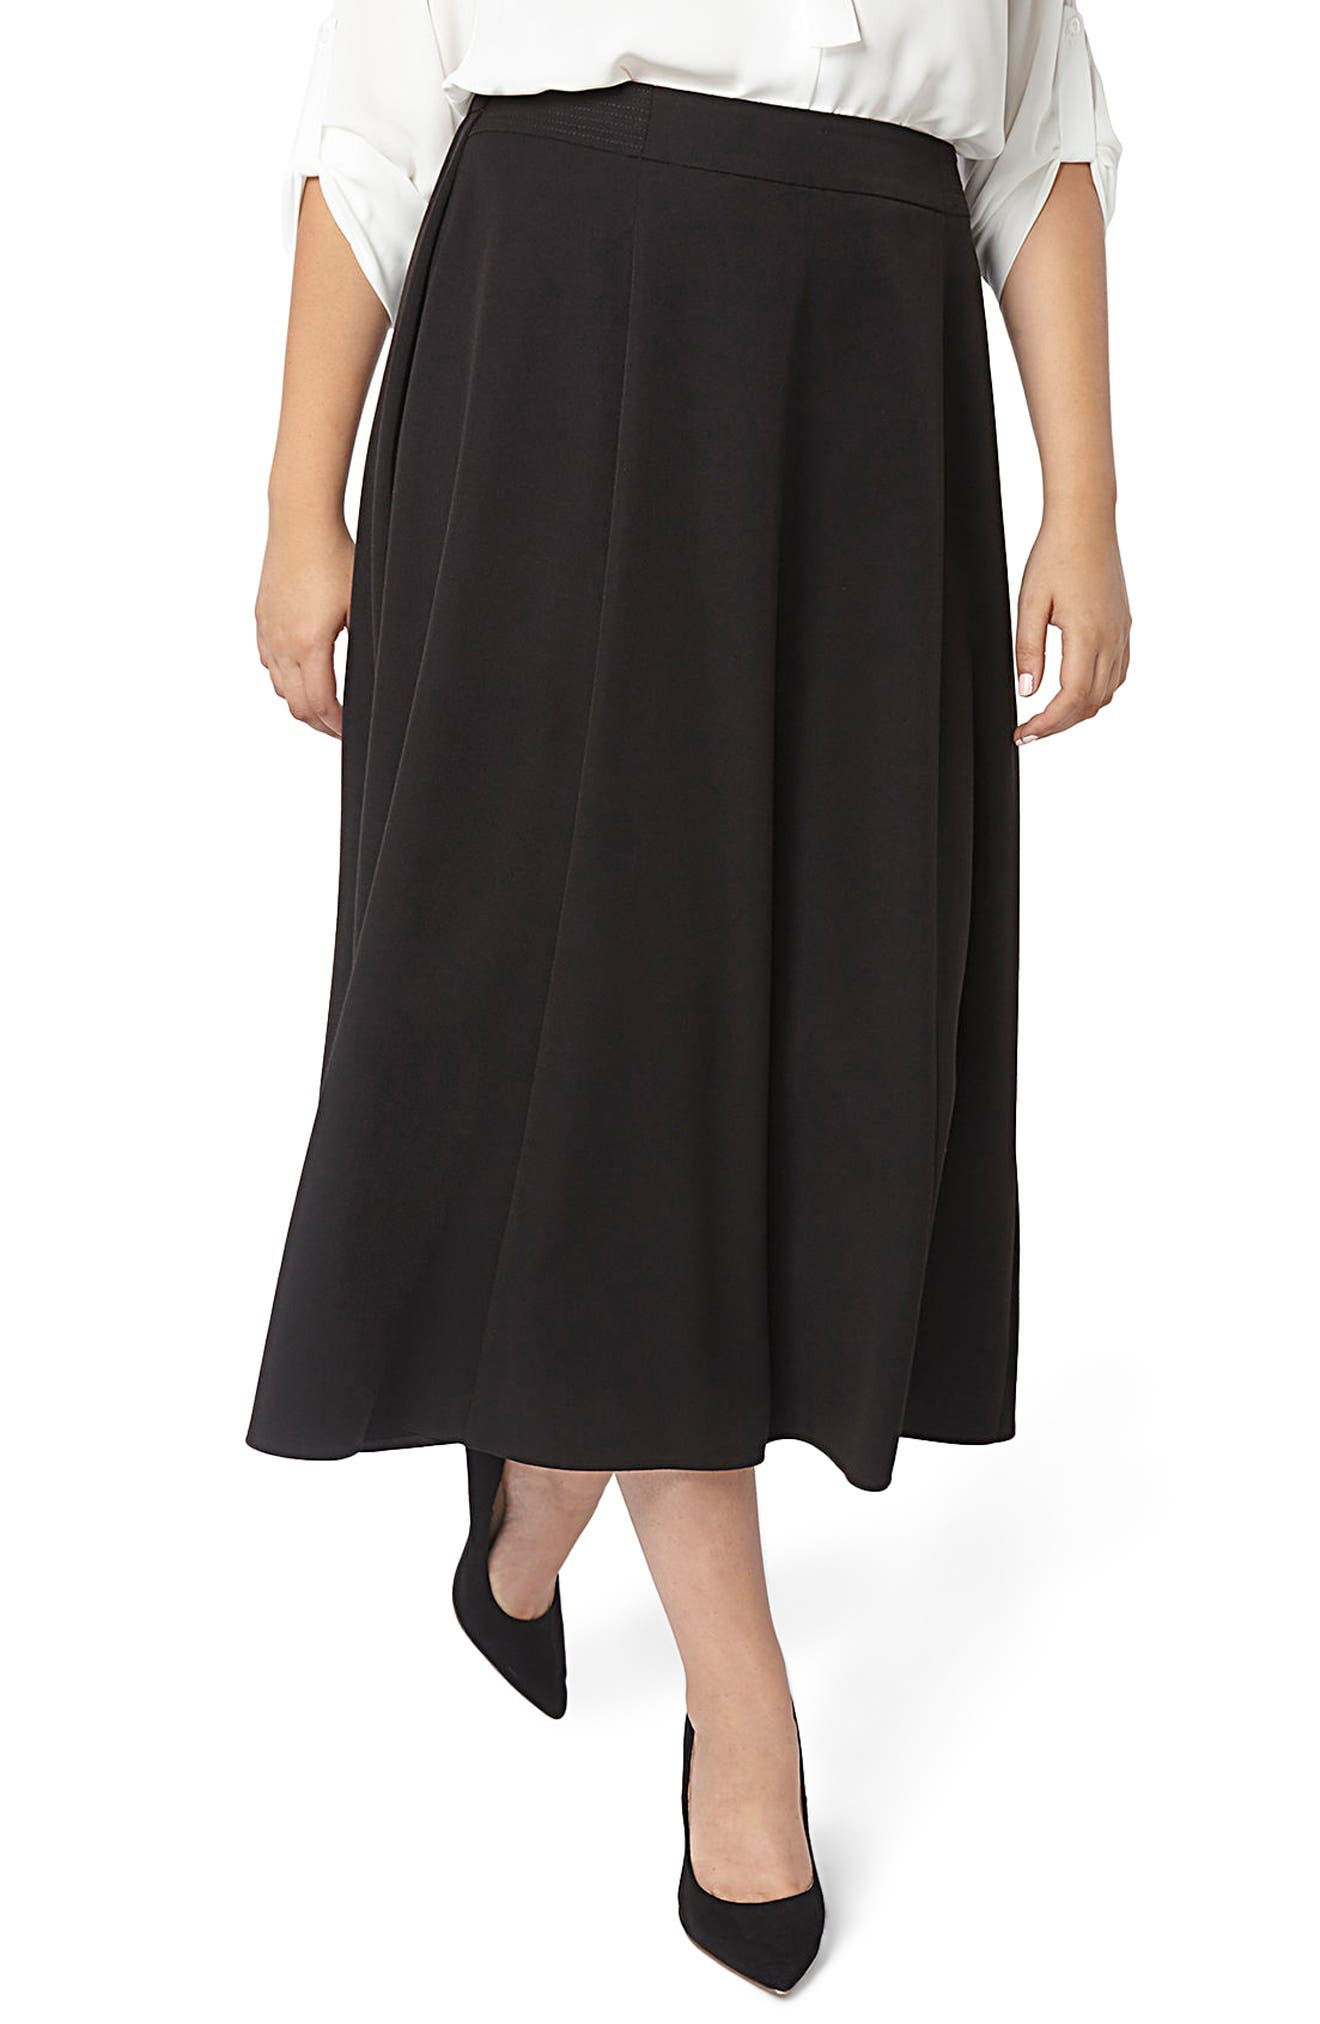 Picasso 36 Skirt,                             Main thumbnail 1, color,                             Black